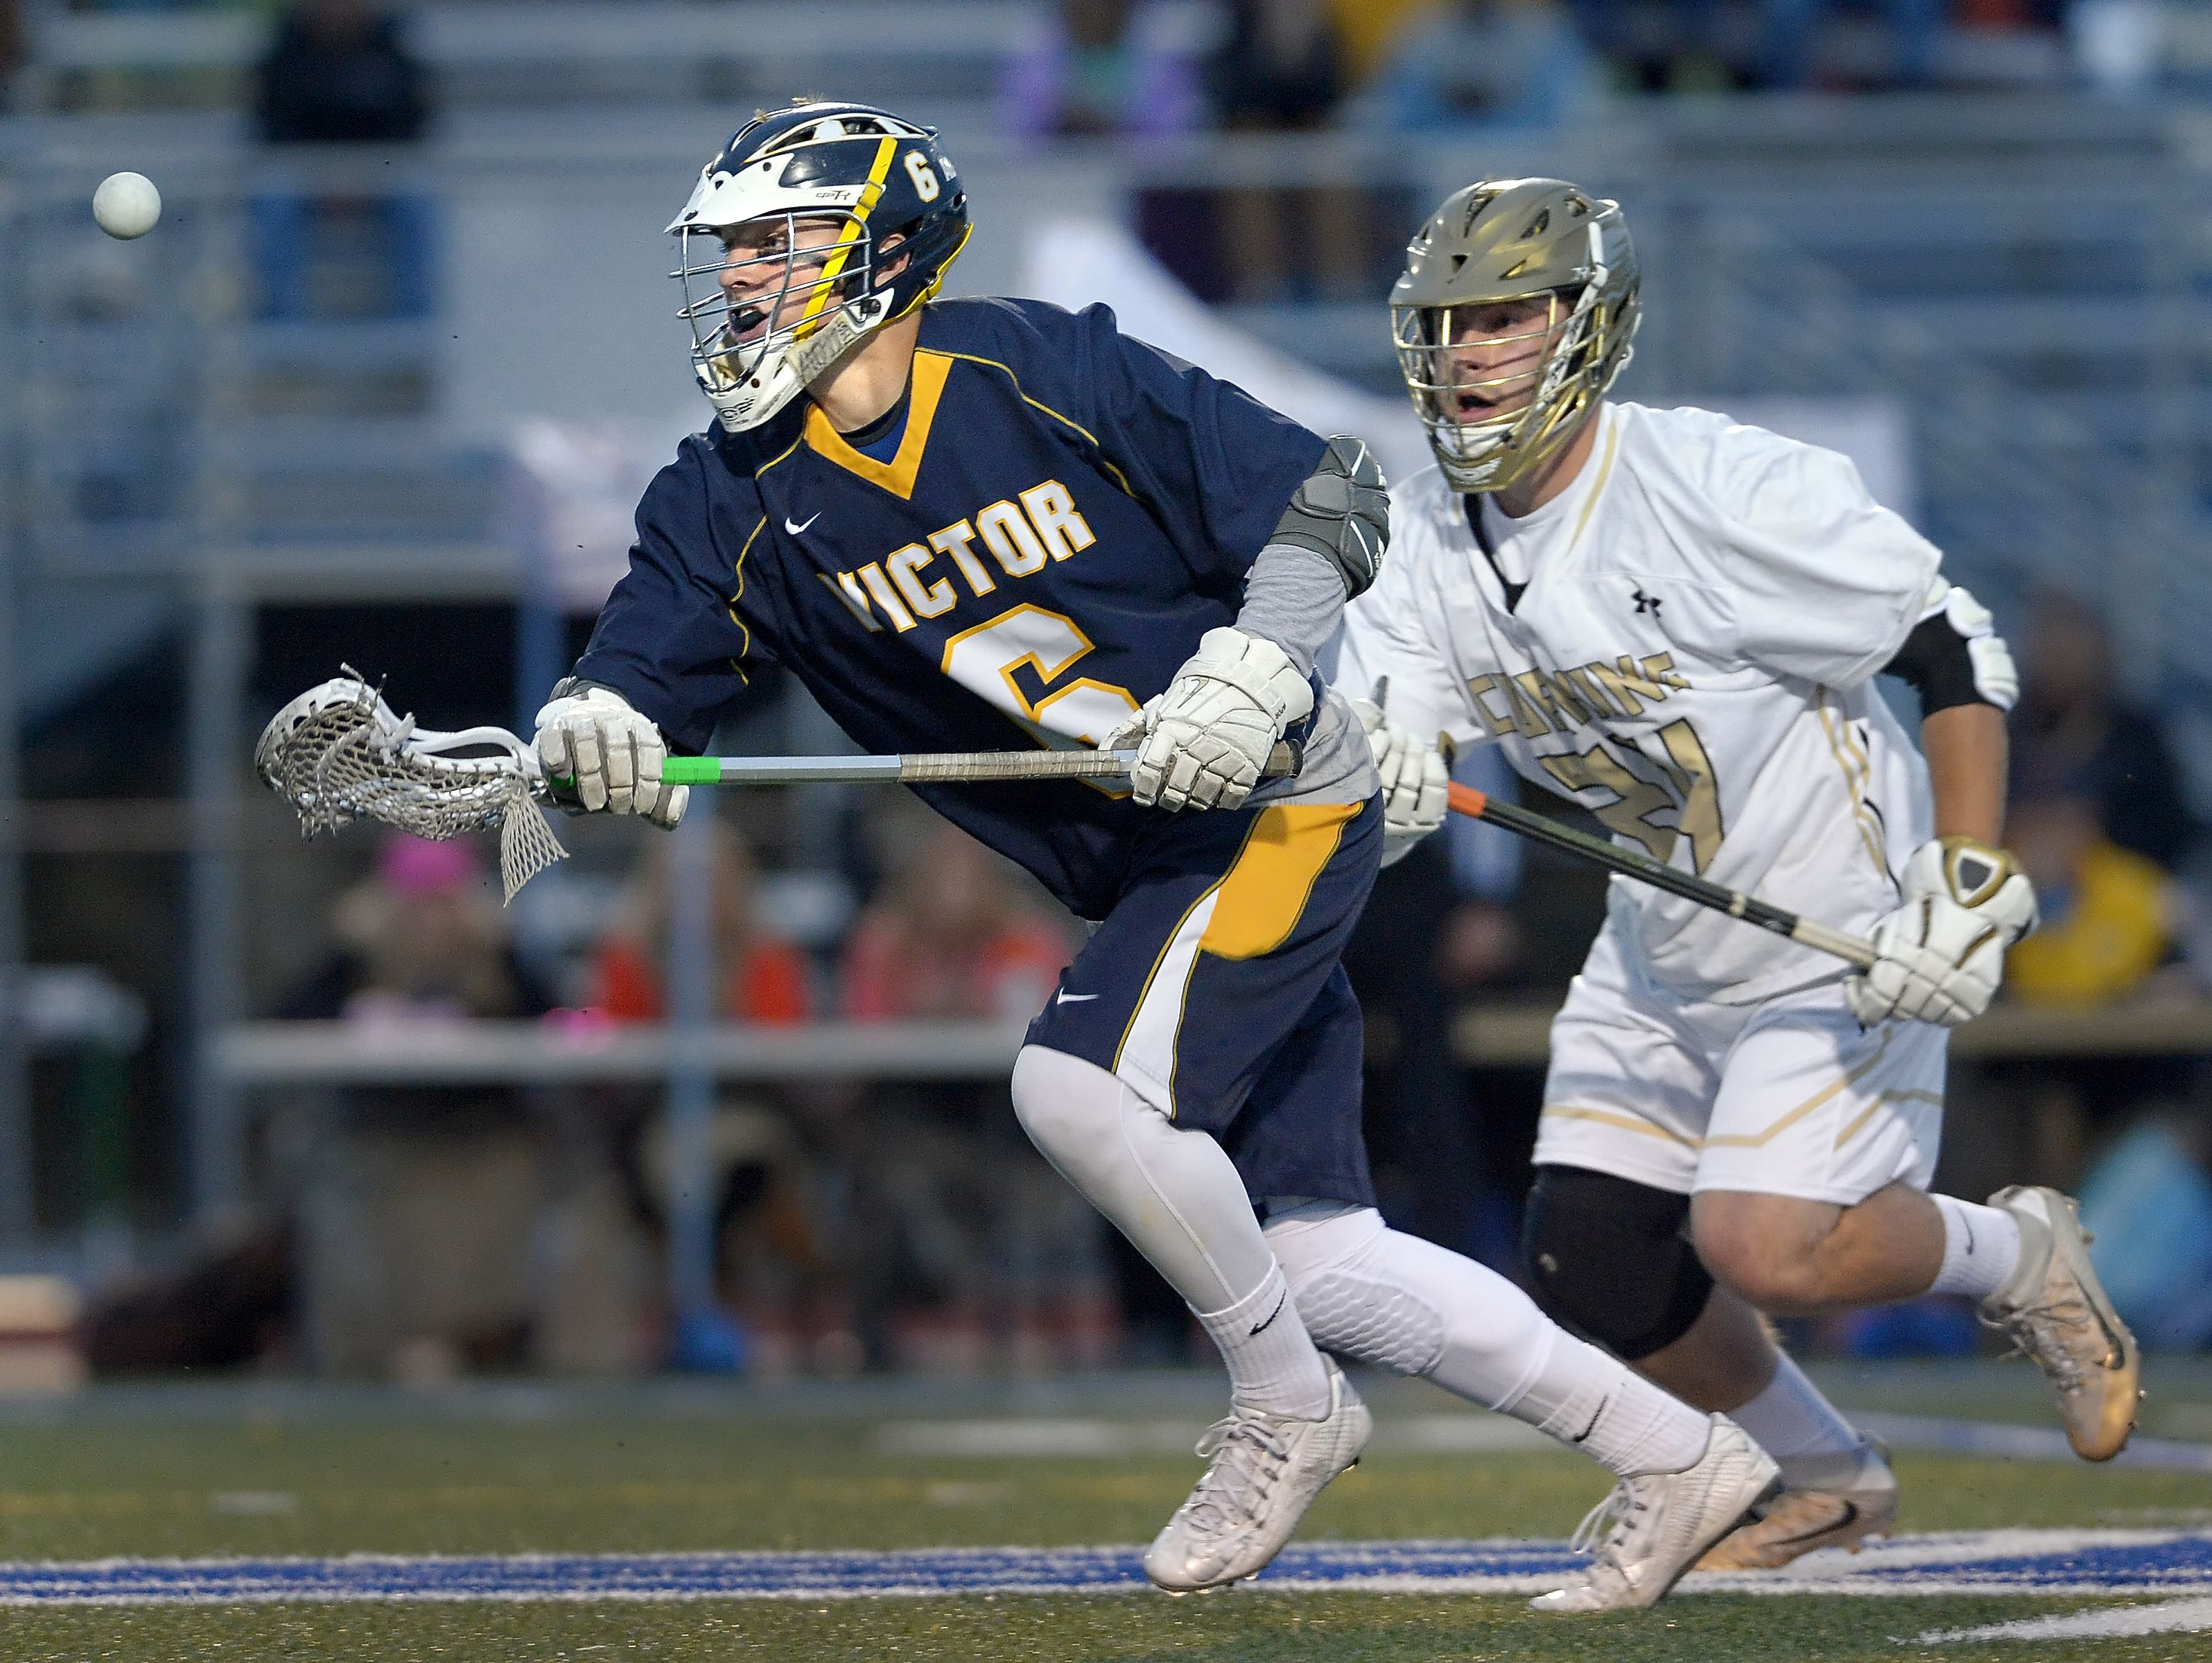 Victor's T.D. Ierlan, left, wins a faceoff from Corning's Jake McNaney during the NYSPHSAA Class A Western Semifinal.